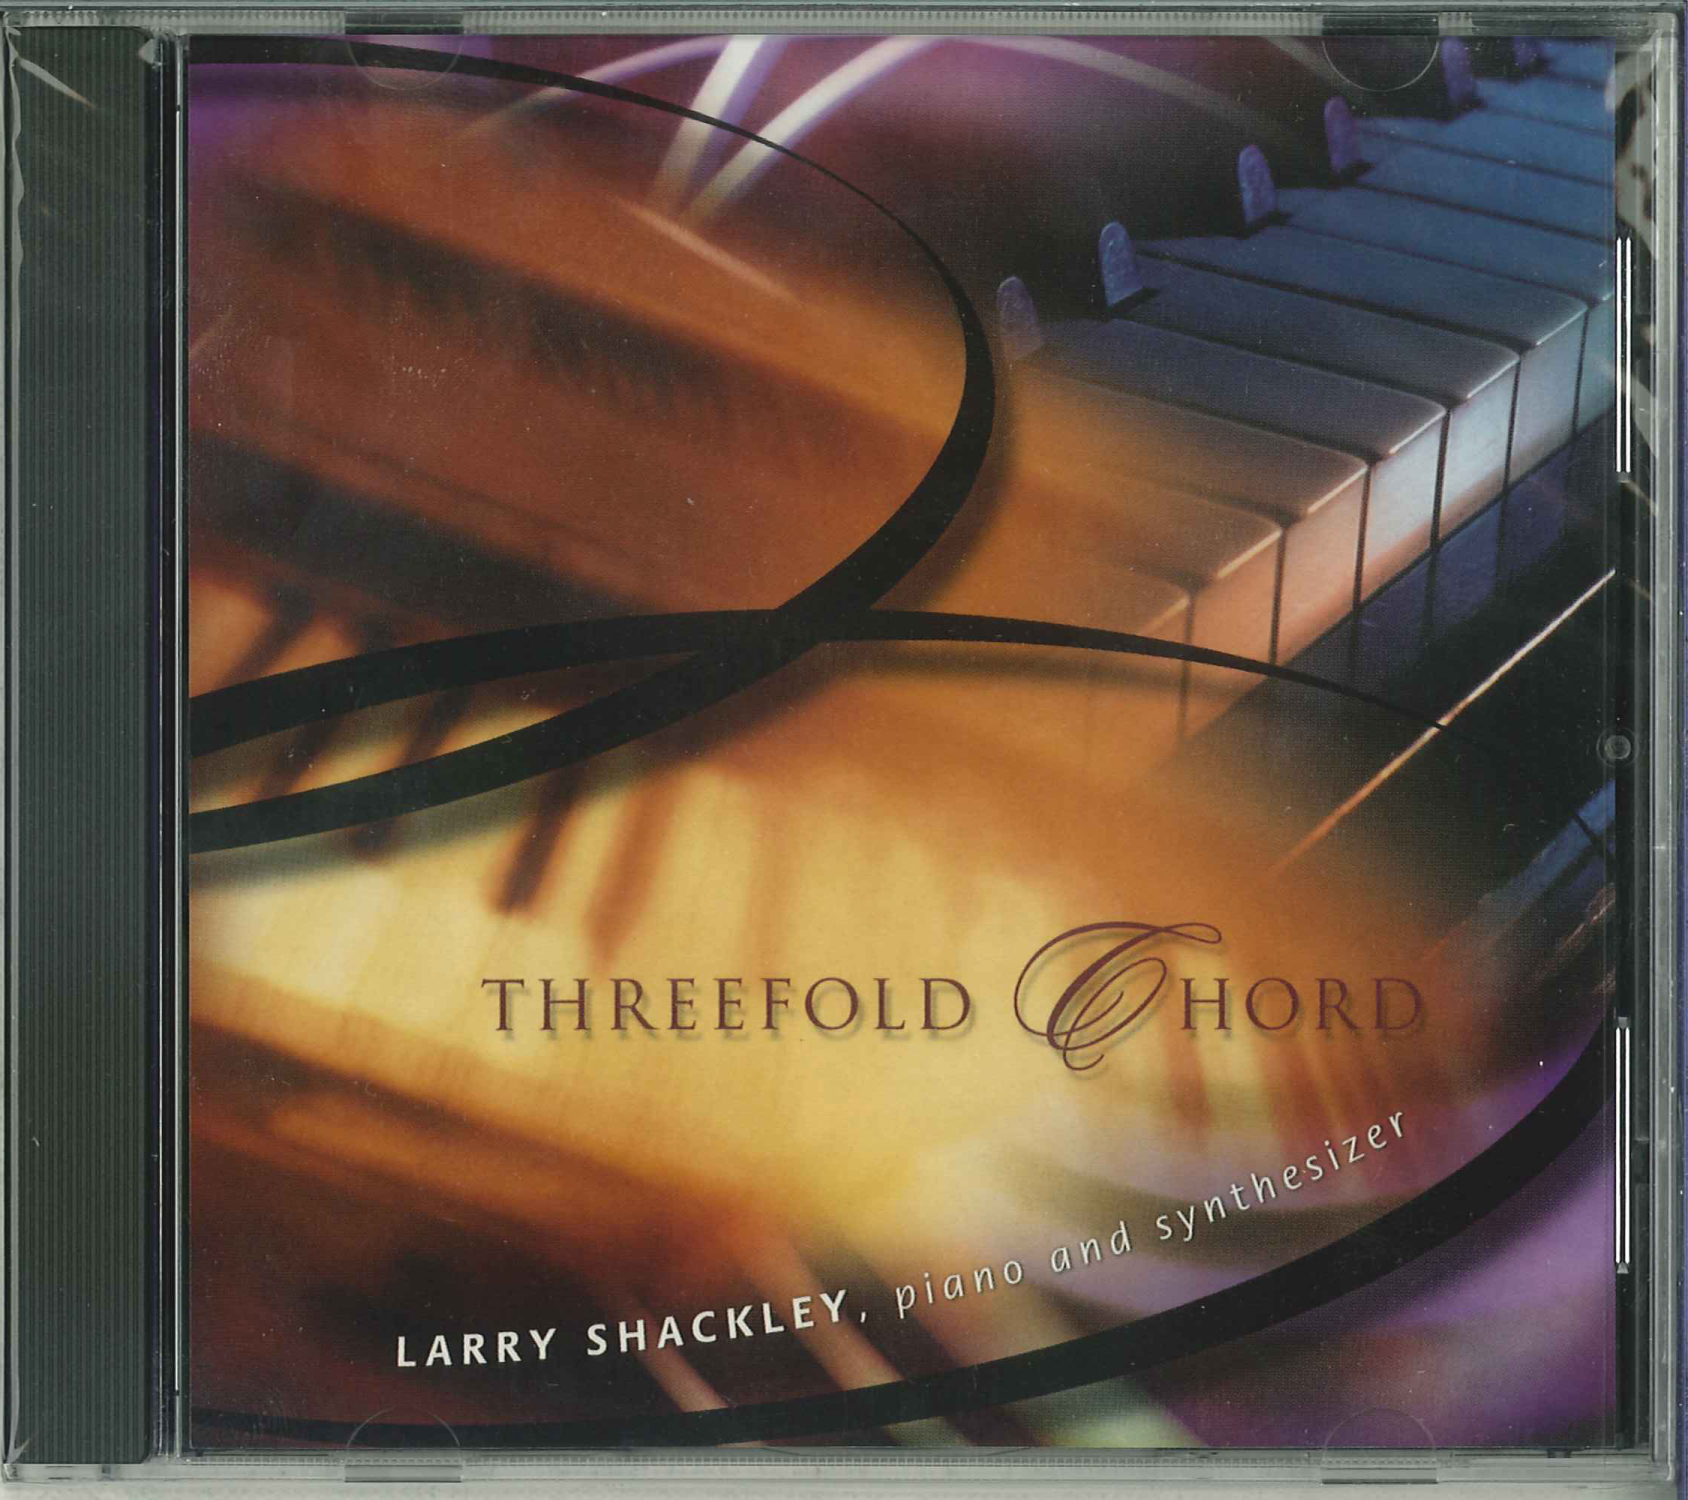 Threefold Chord CD (Spiritual Jazz and Celtic Hymn Settings) Cover Image